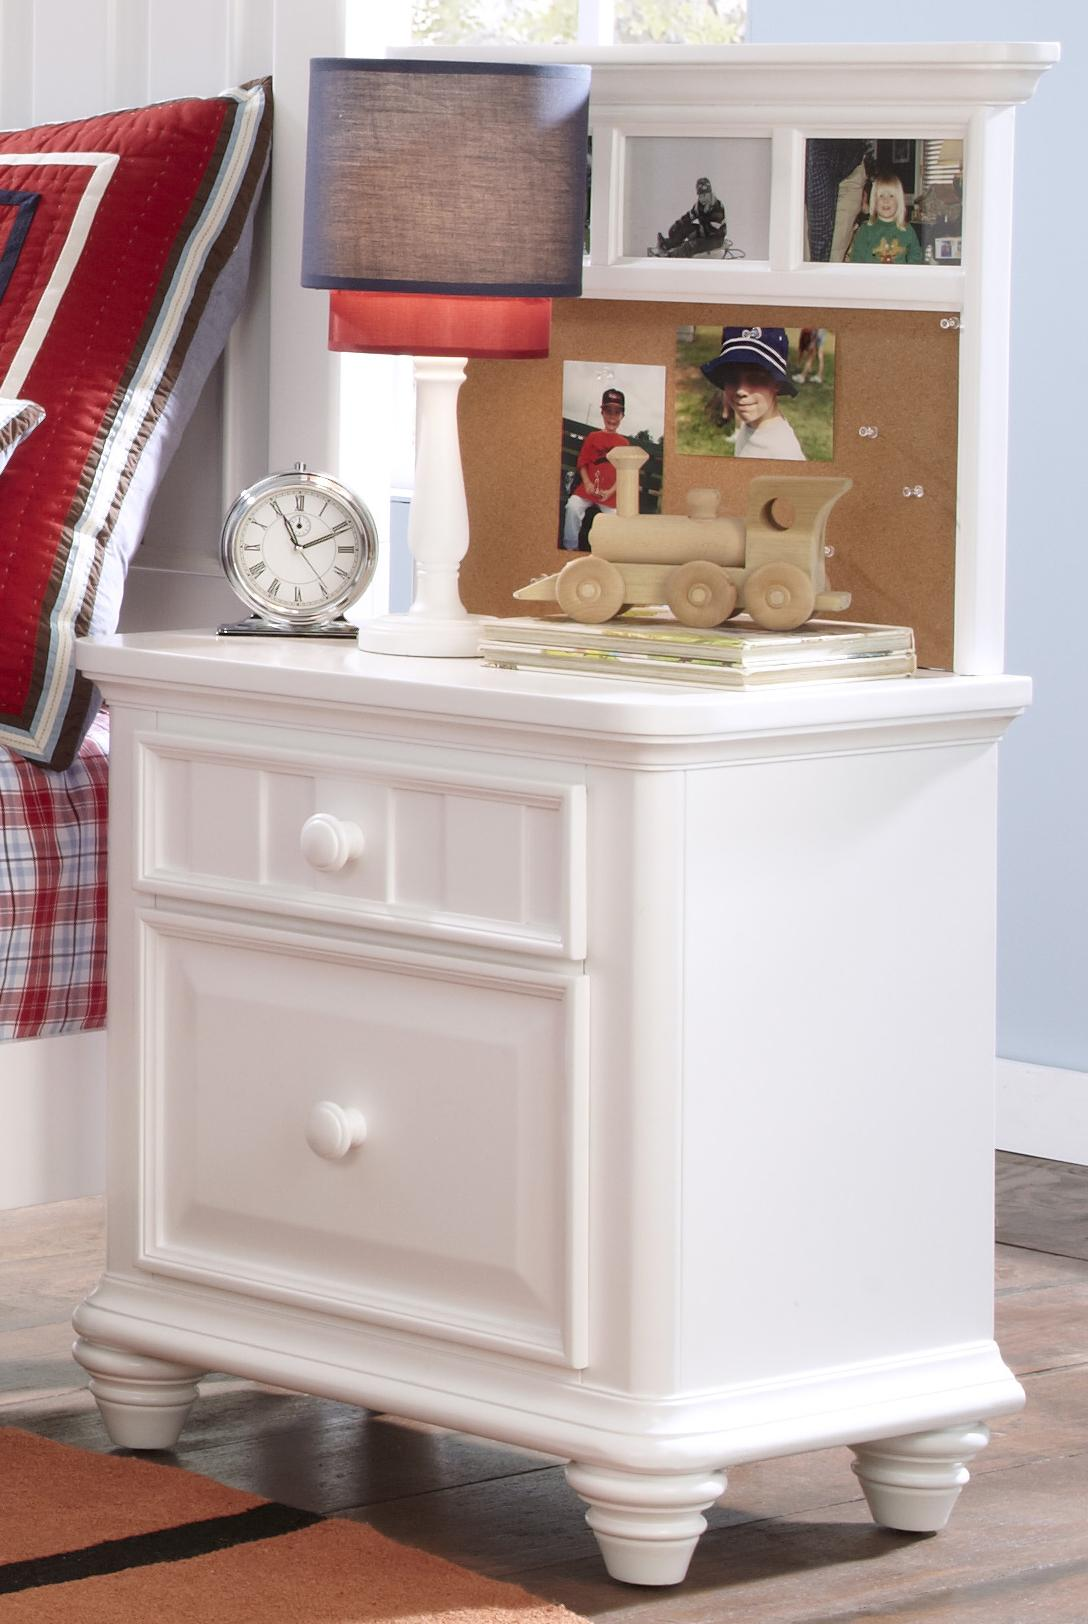 Morris Home Furnishings Shelbourne Shelbourne Nightstand with Back Panel - Item Number: 8466-450+451